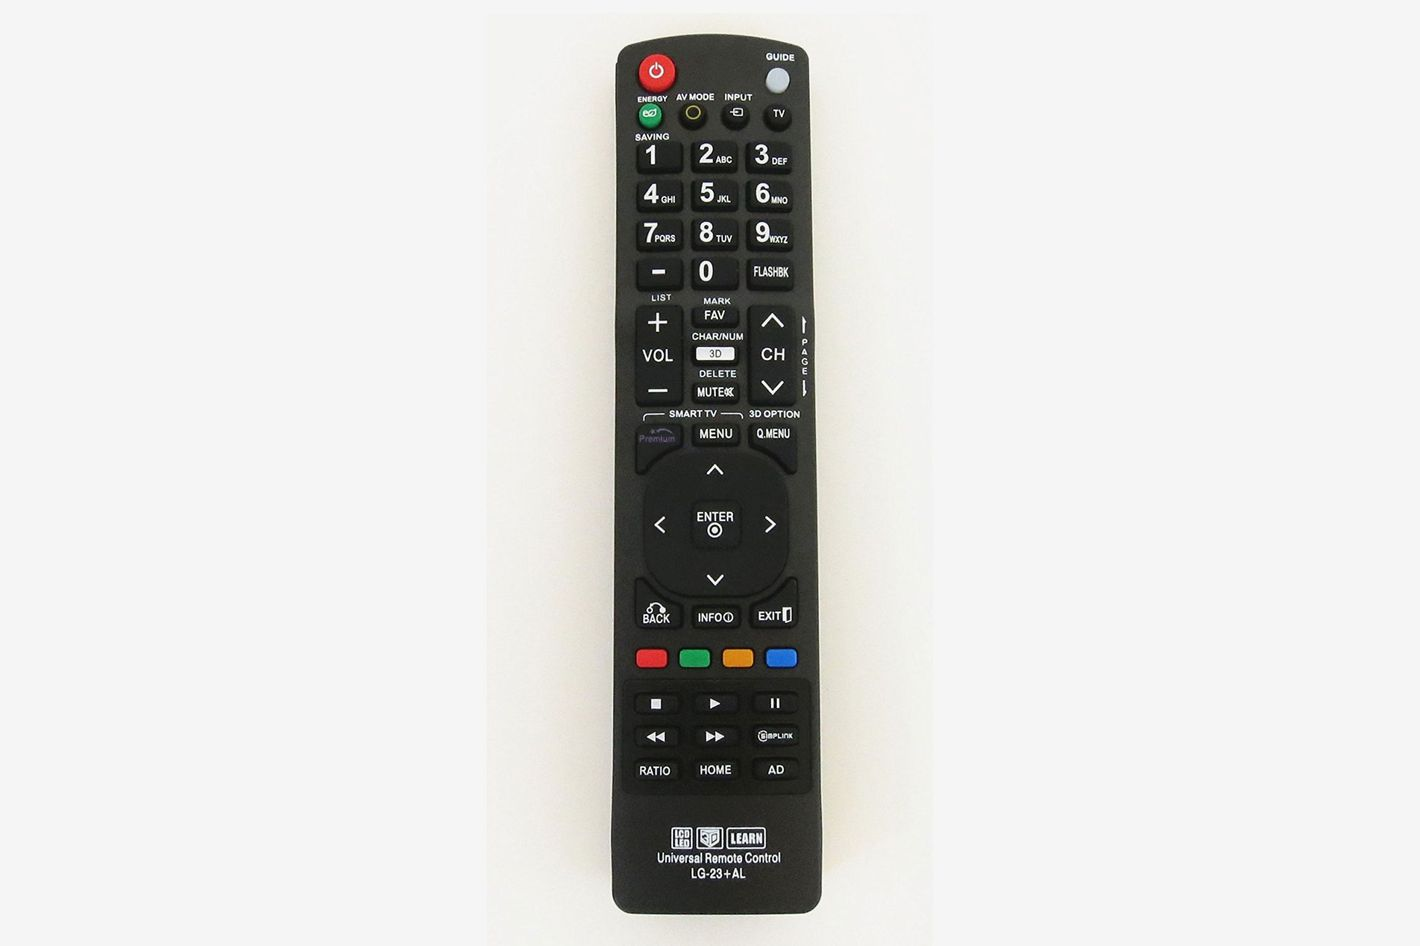 Nettech New LG AKB72915239 Universal Remote Control for All LG BRAND TV, Smart TV - 1 Year Warranty(LG-23+AL)